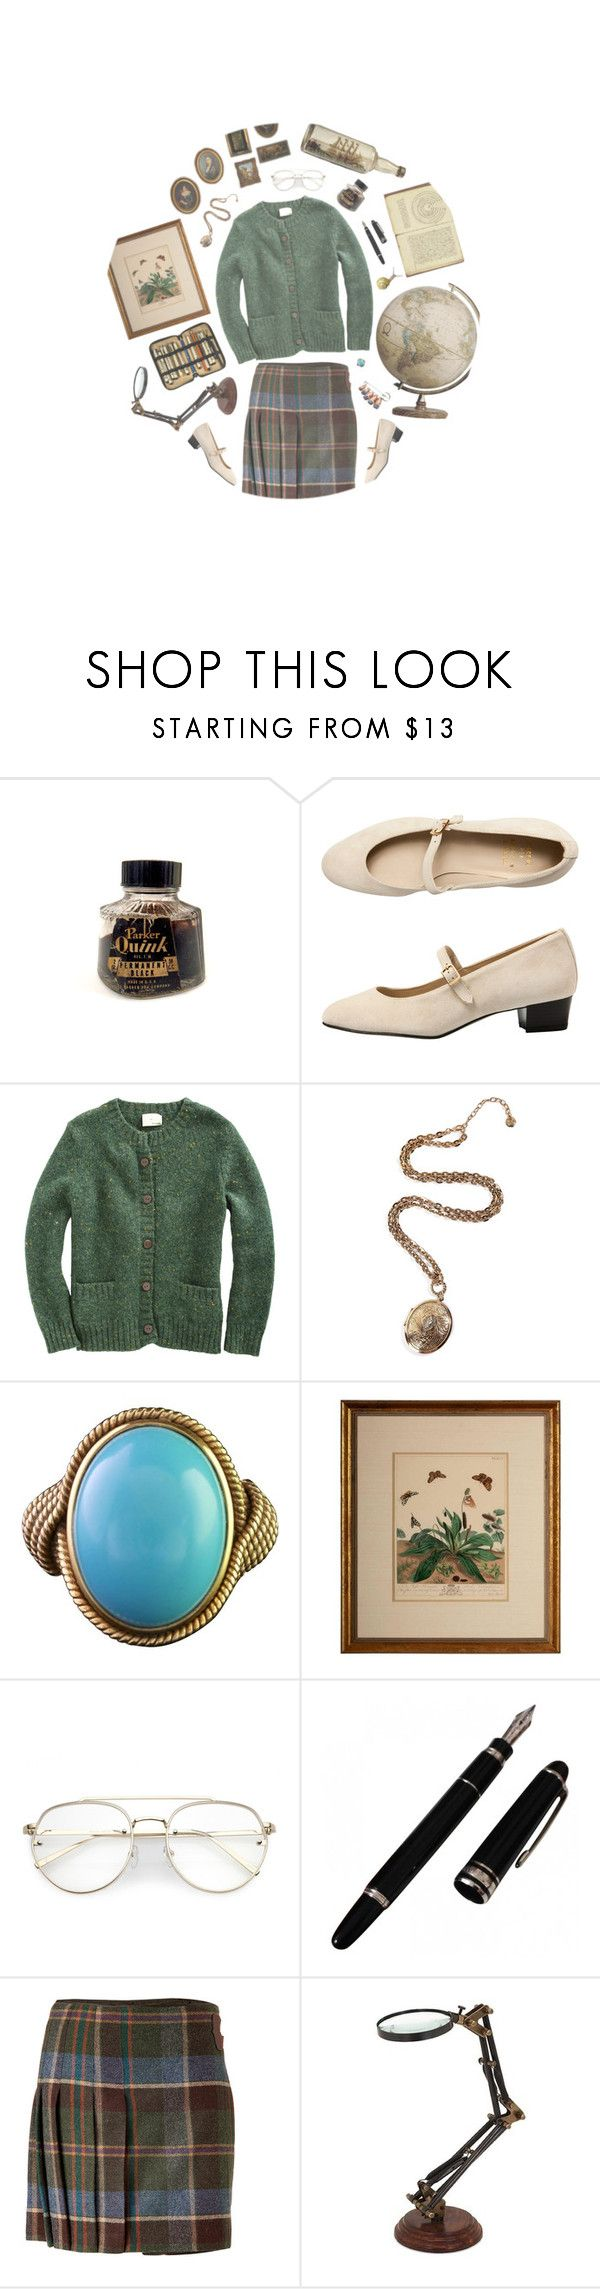 """""""Histoire"""" by kennyblayne ❤ liked on Polyvore featuring Parker, American Apparel, Band of Outsiders, R.J. Graziano, Ralph Lauren and Moleskine"""